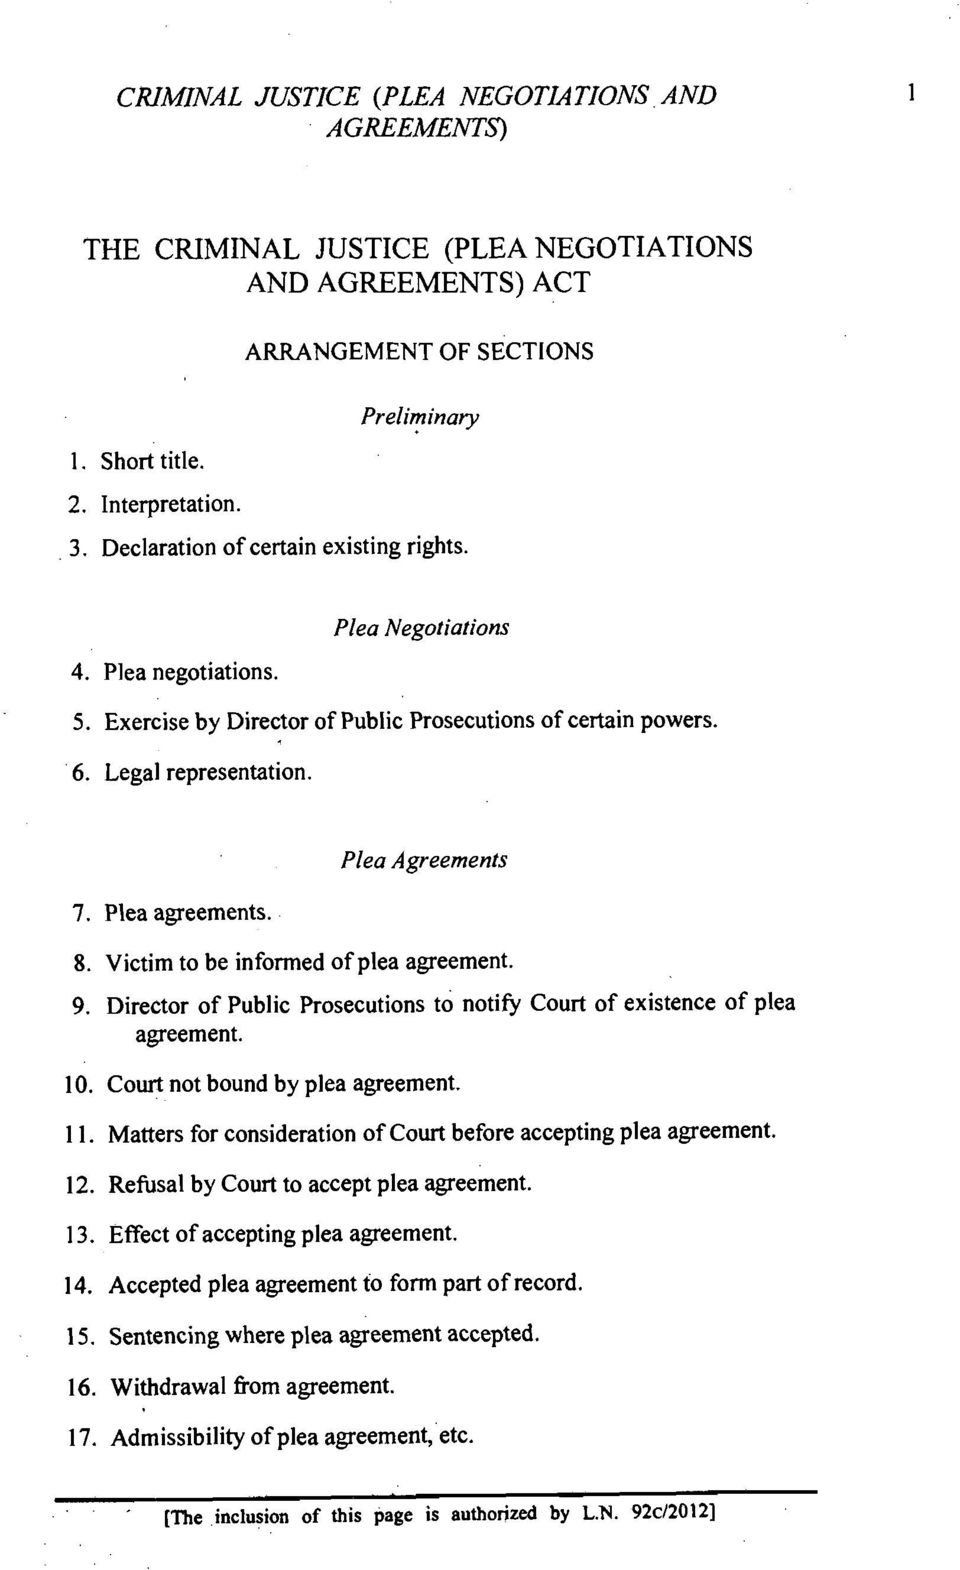 Plea Agreements 8. Victim to be informed of plea agreement. 9. Director of Public Prosecutions to notify Court of existence of plea agreement. 10. Court not bound by plea agreement. 1 1.